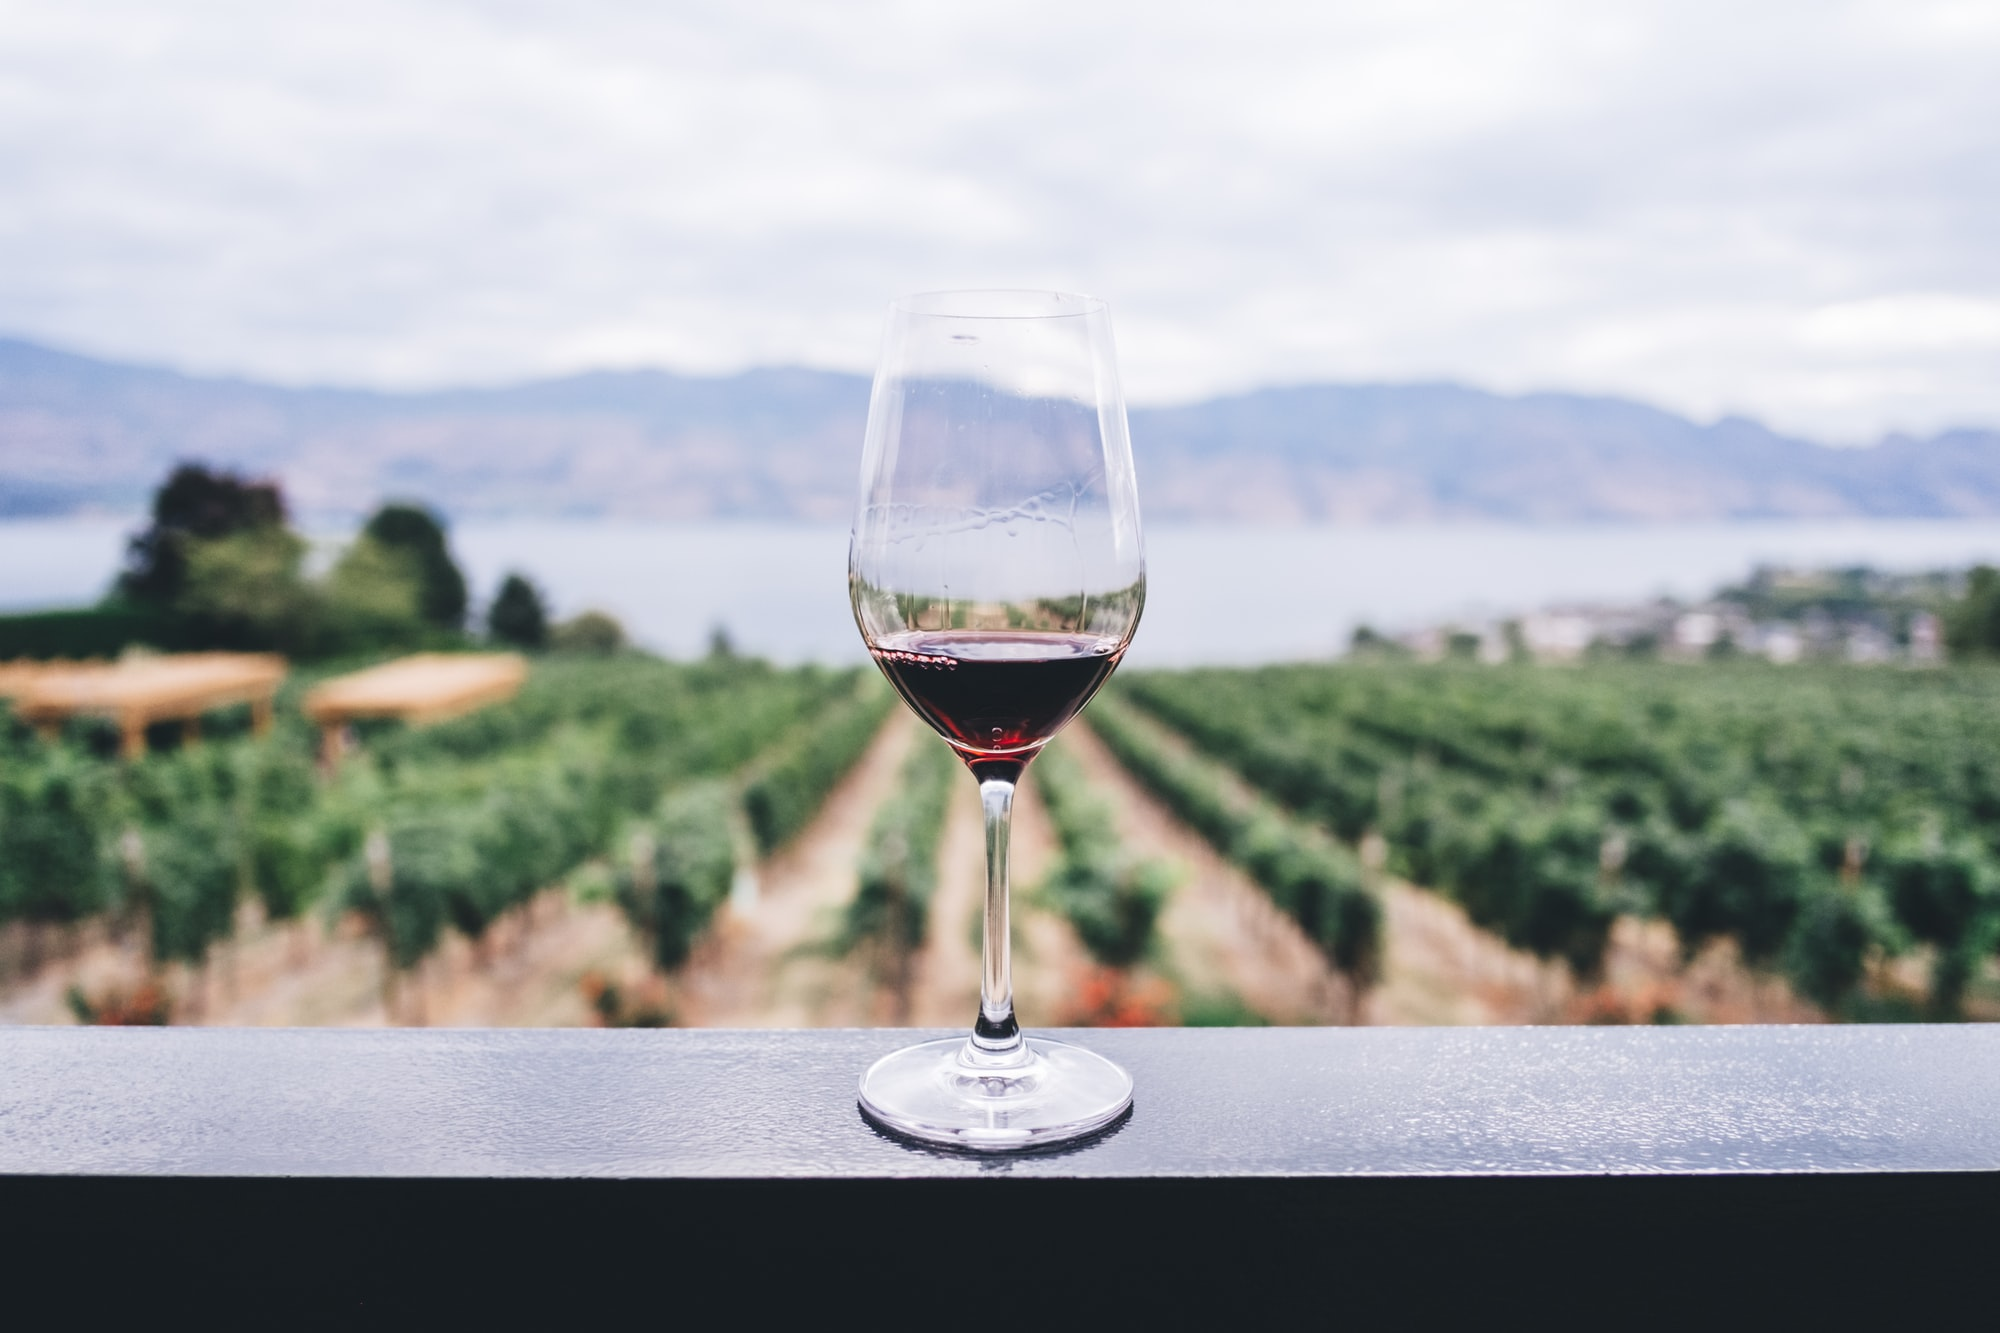 A very educational (and tasty) weekend can be had if you explore the wine region of the Okanagen Valley in Canada.